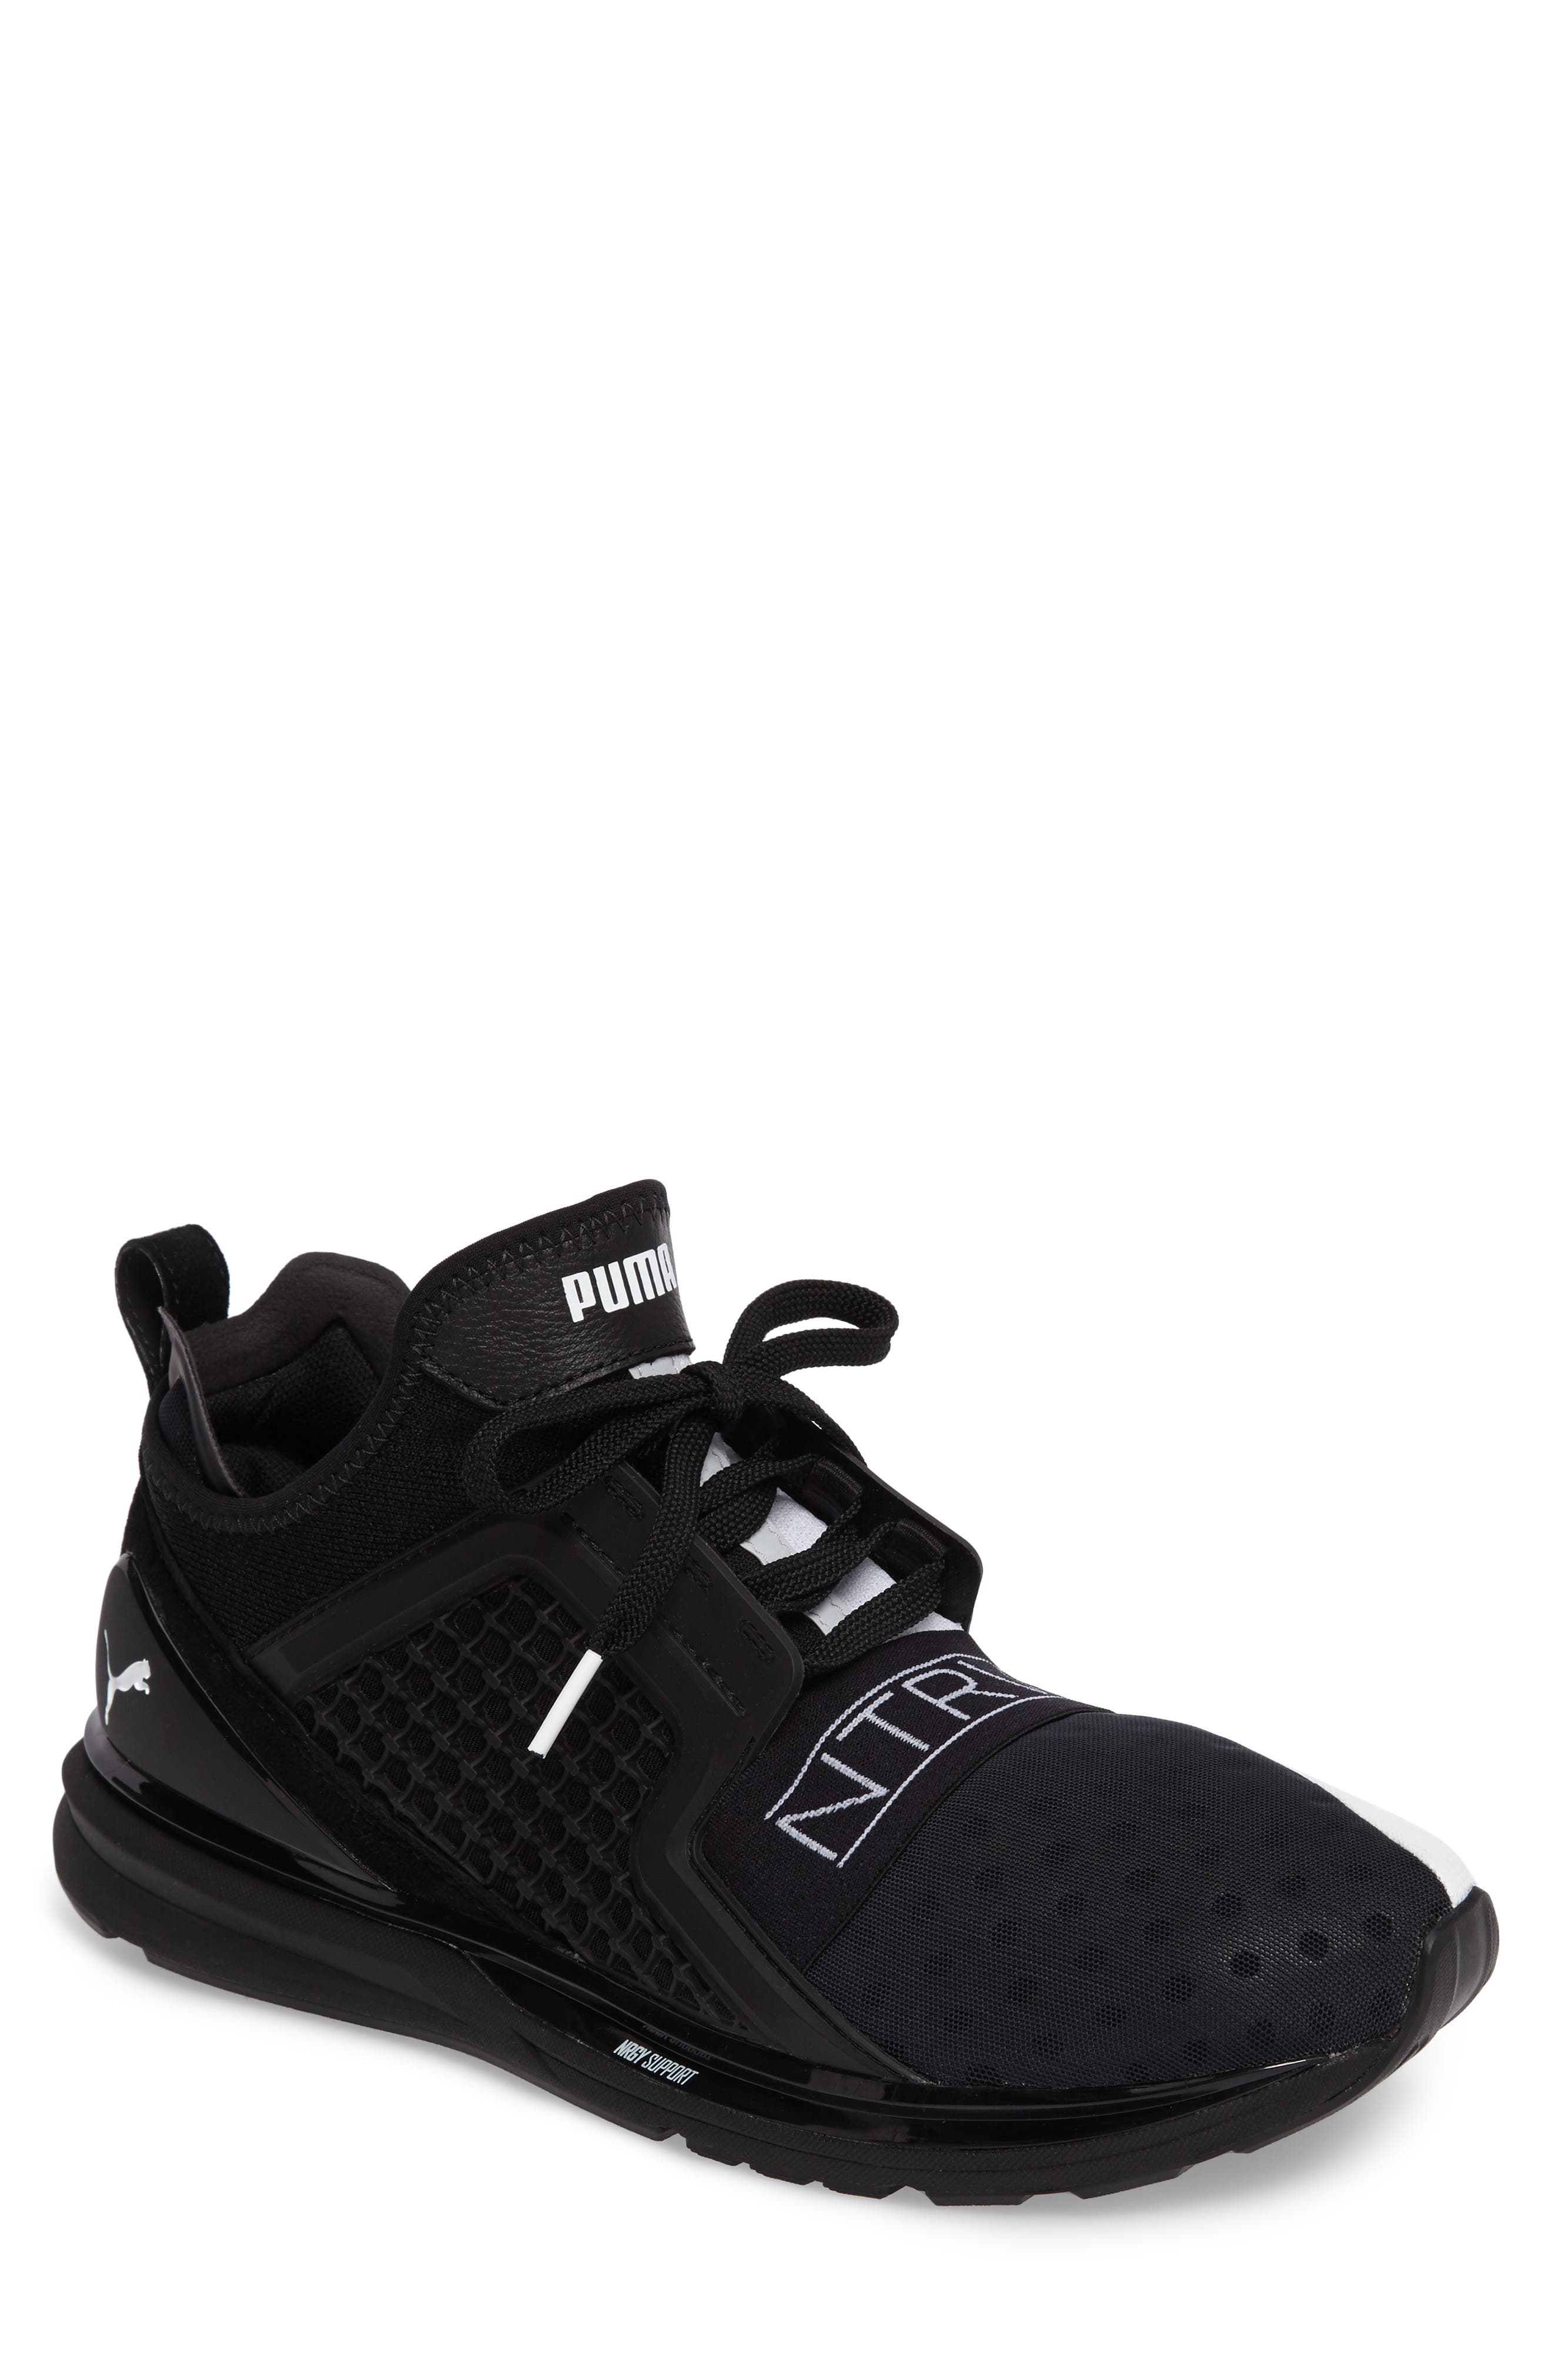 PUMA Staple Ignite Limitless Sneaker (Men)